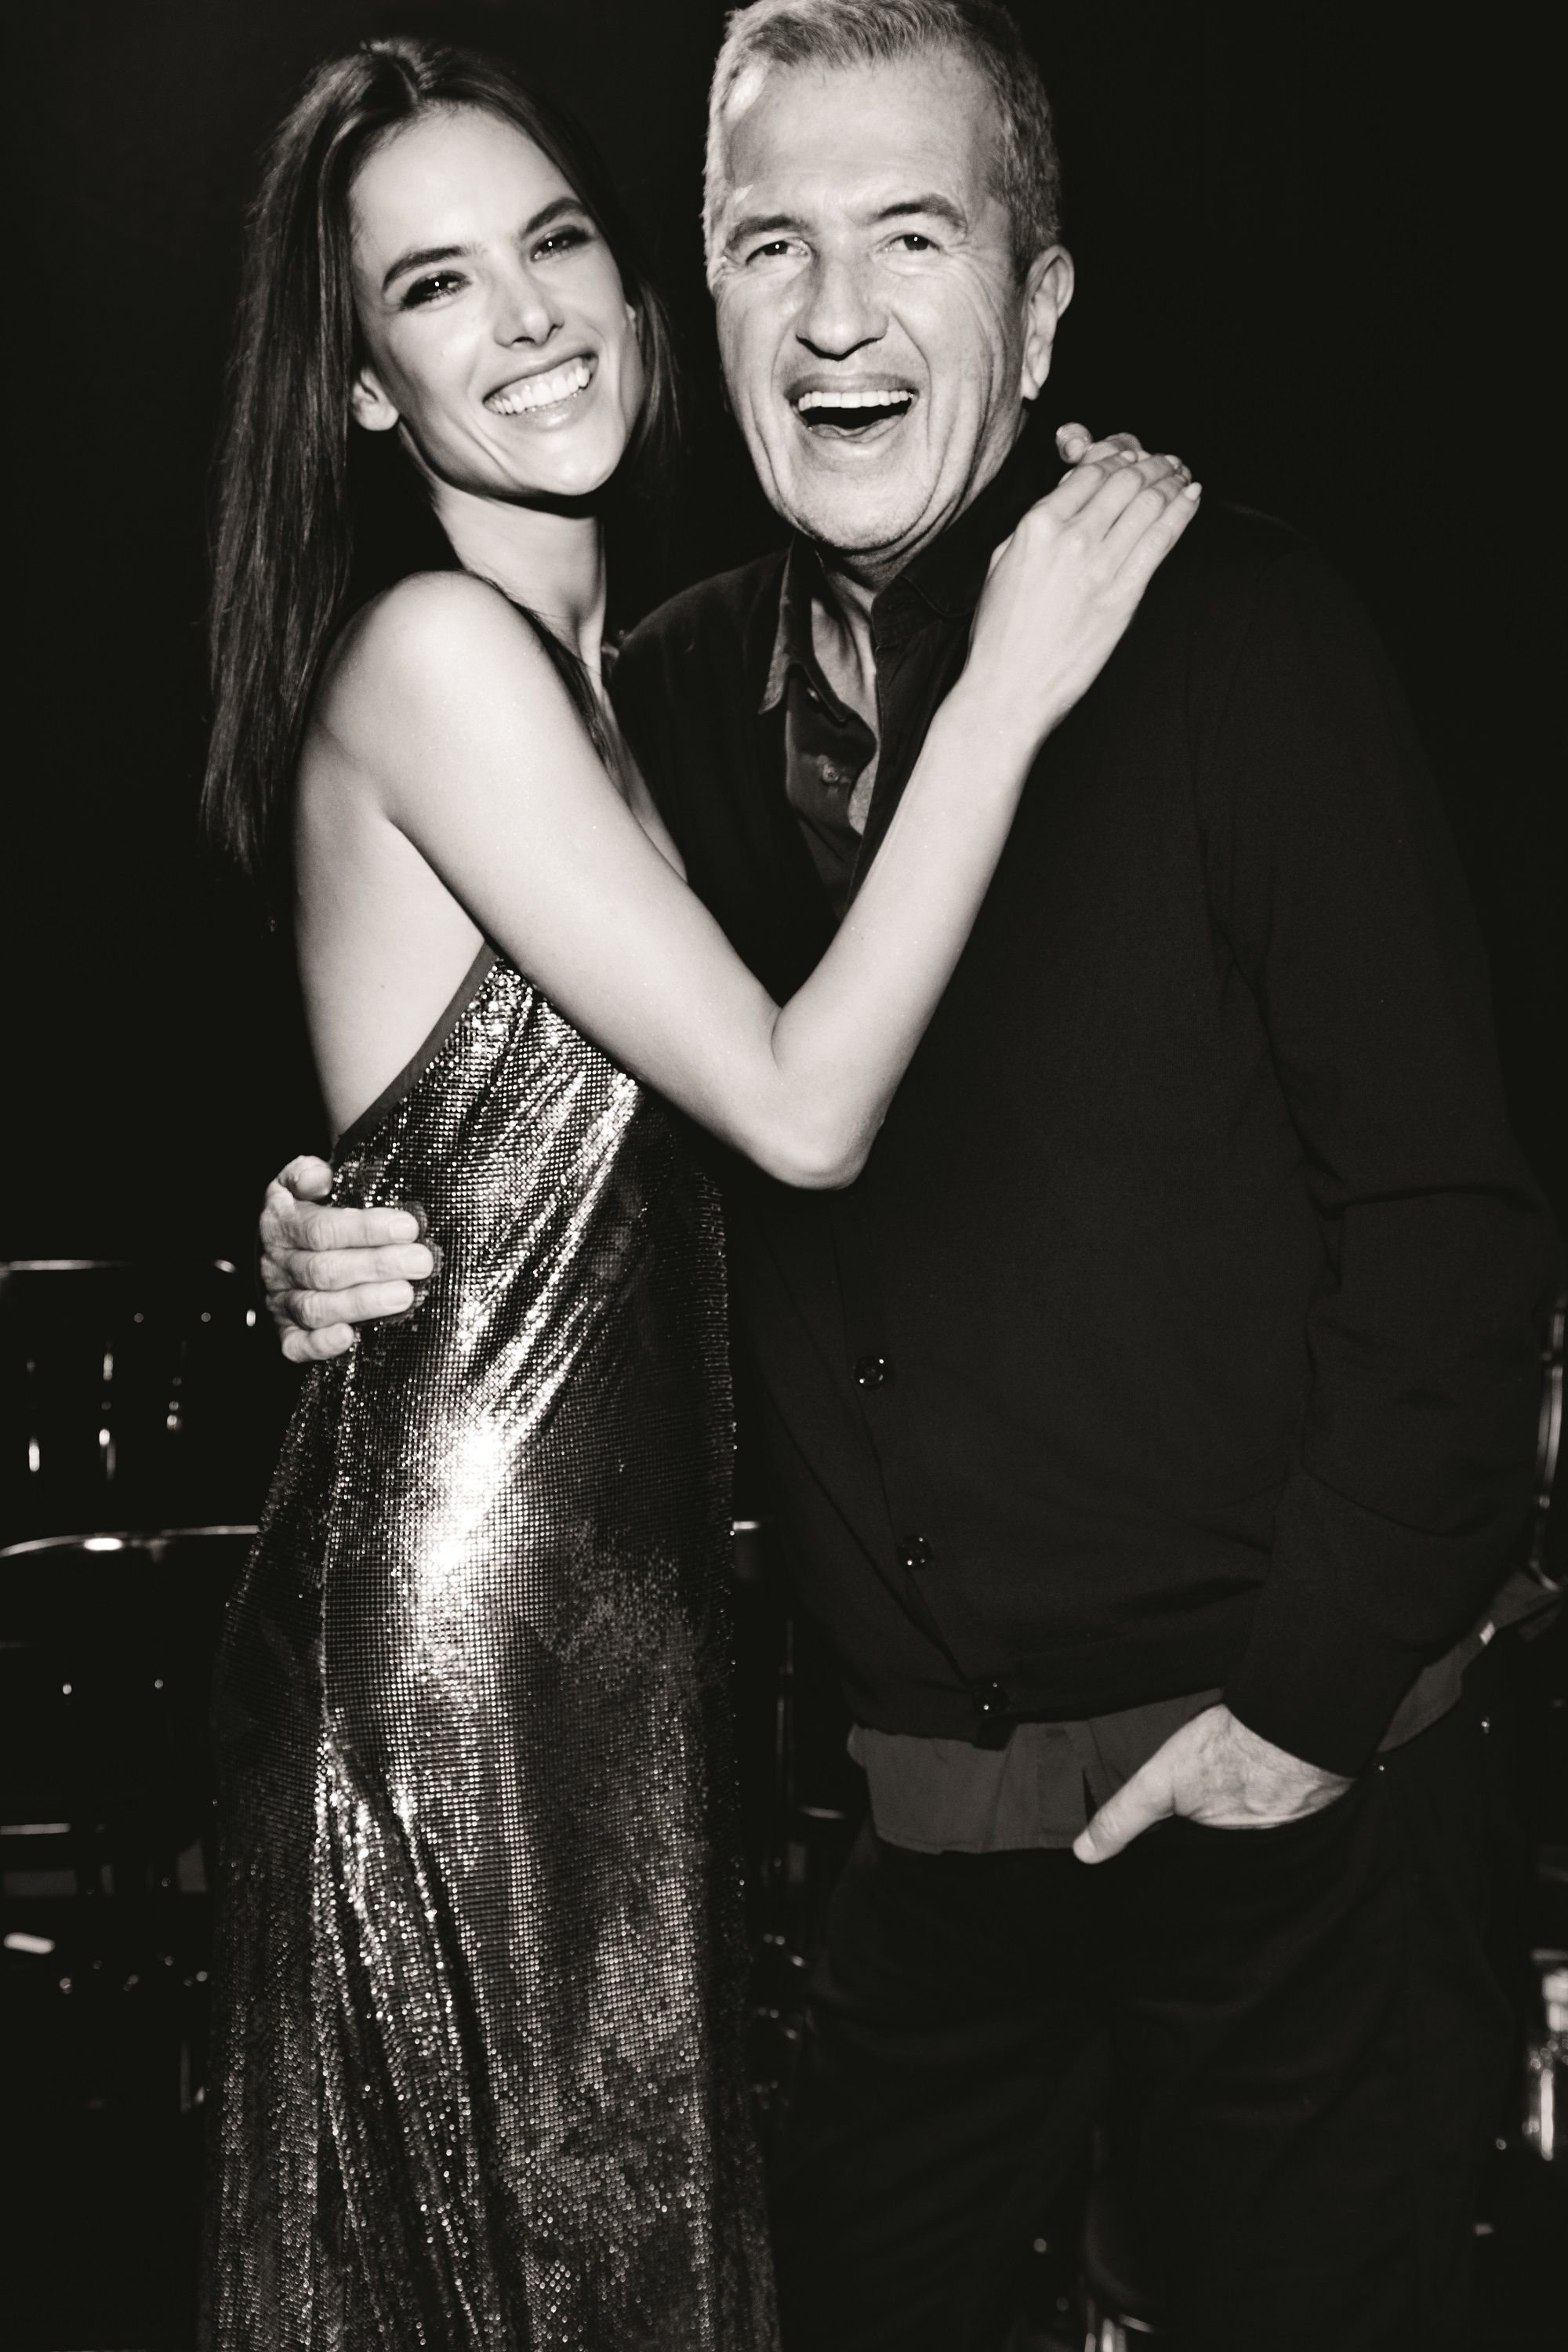 Mario Testino and Alessandra Ambrosio for Ciroc